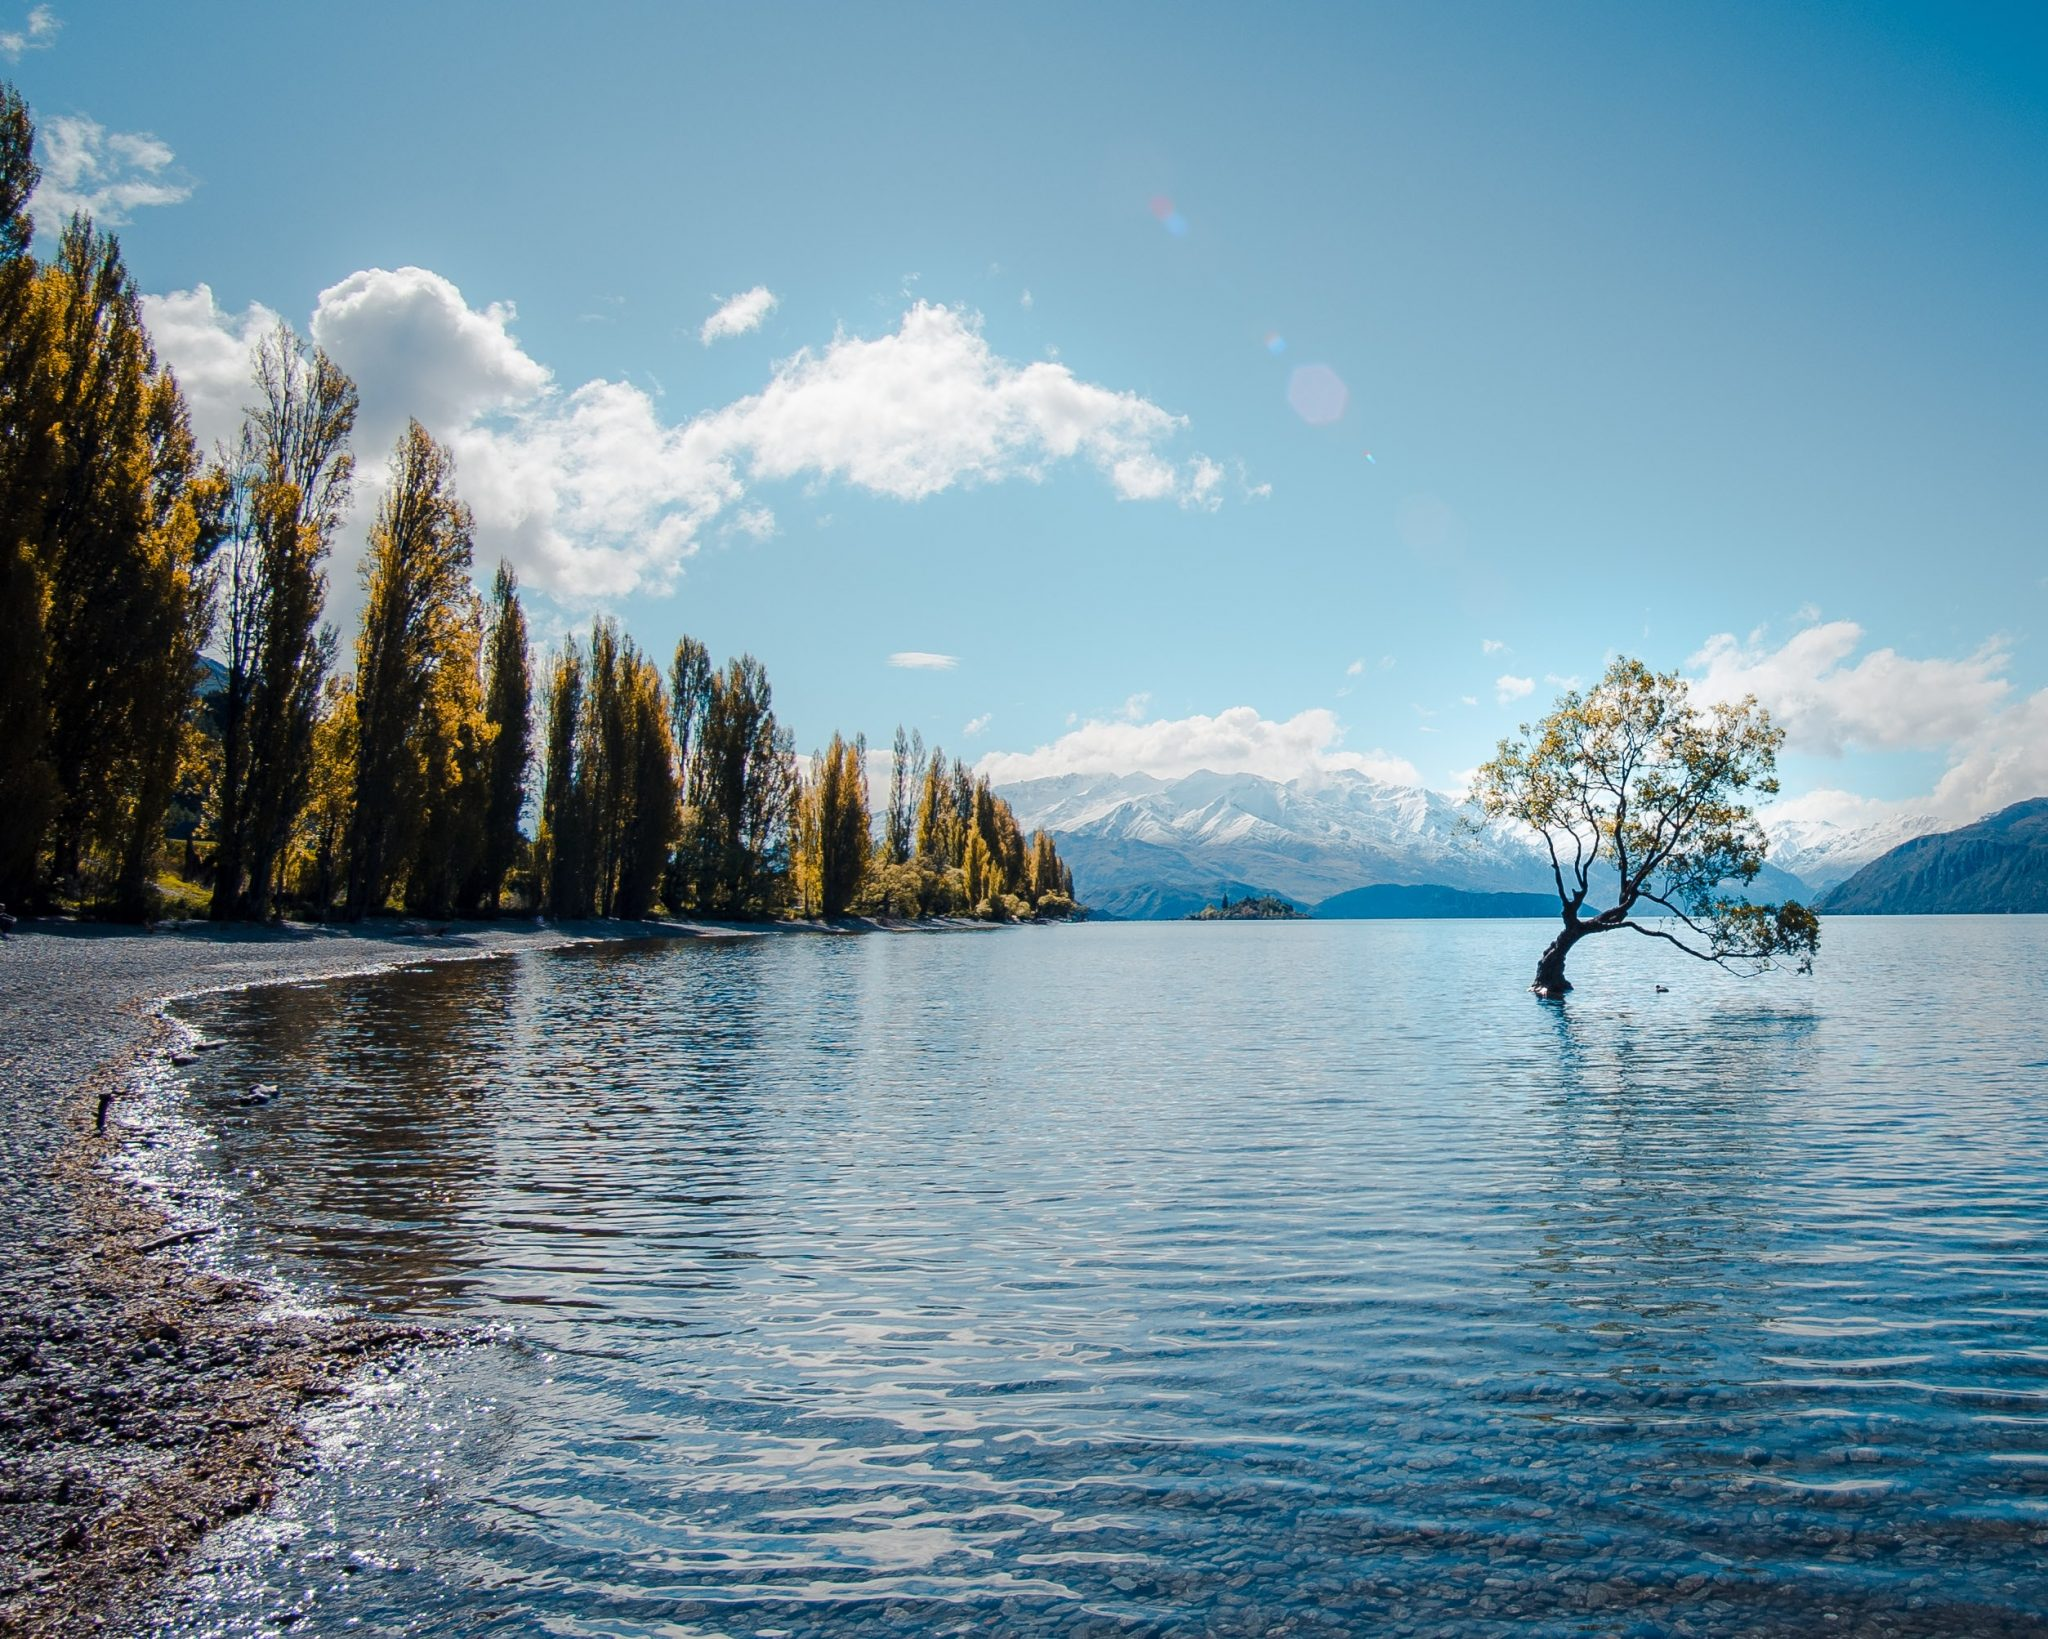 That Wanaka tree, Wanaka, New Zealand-unsplash